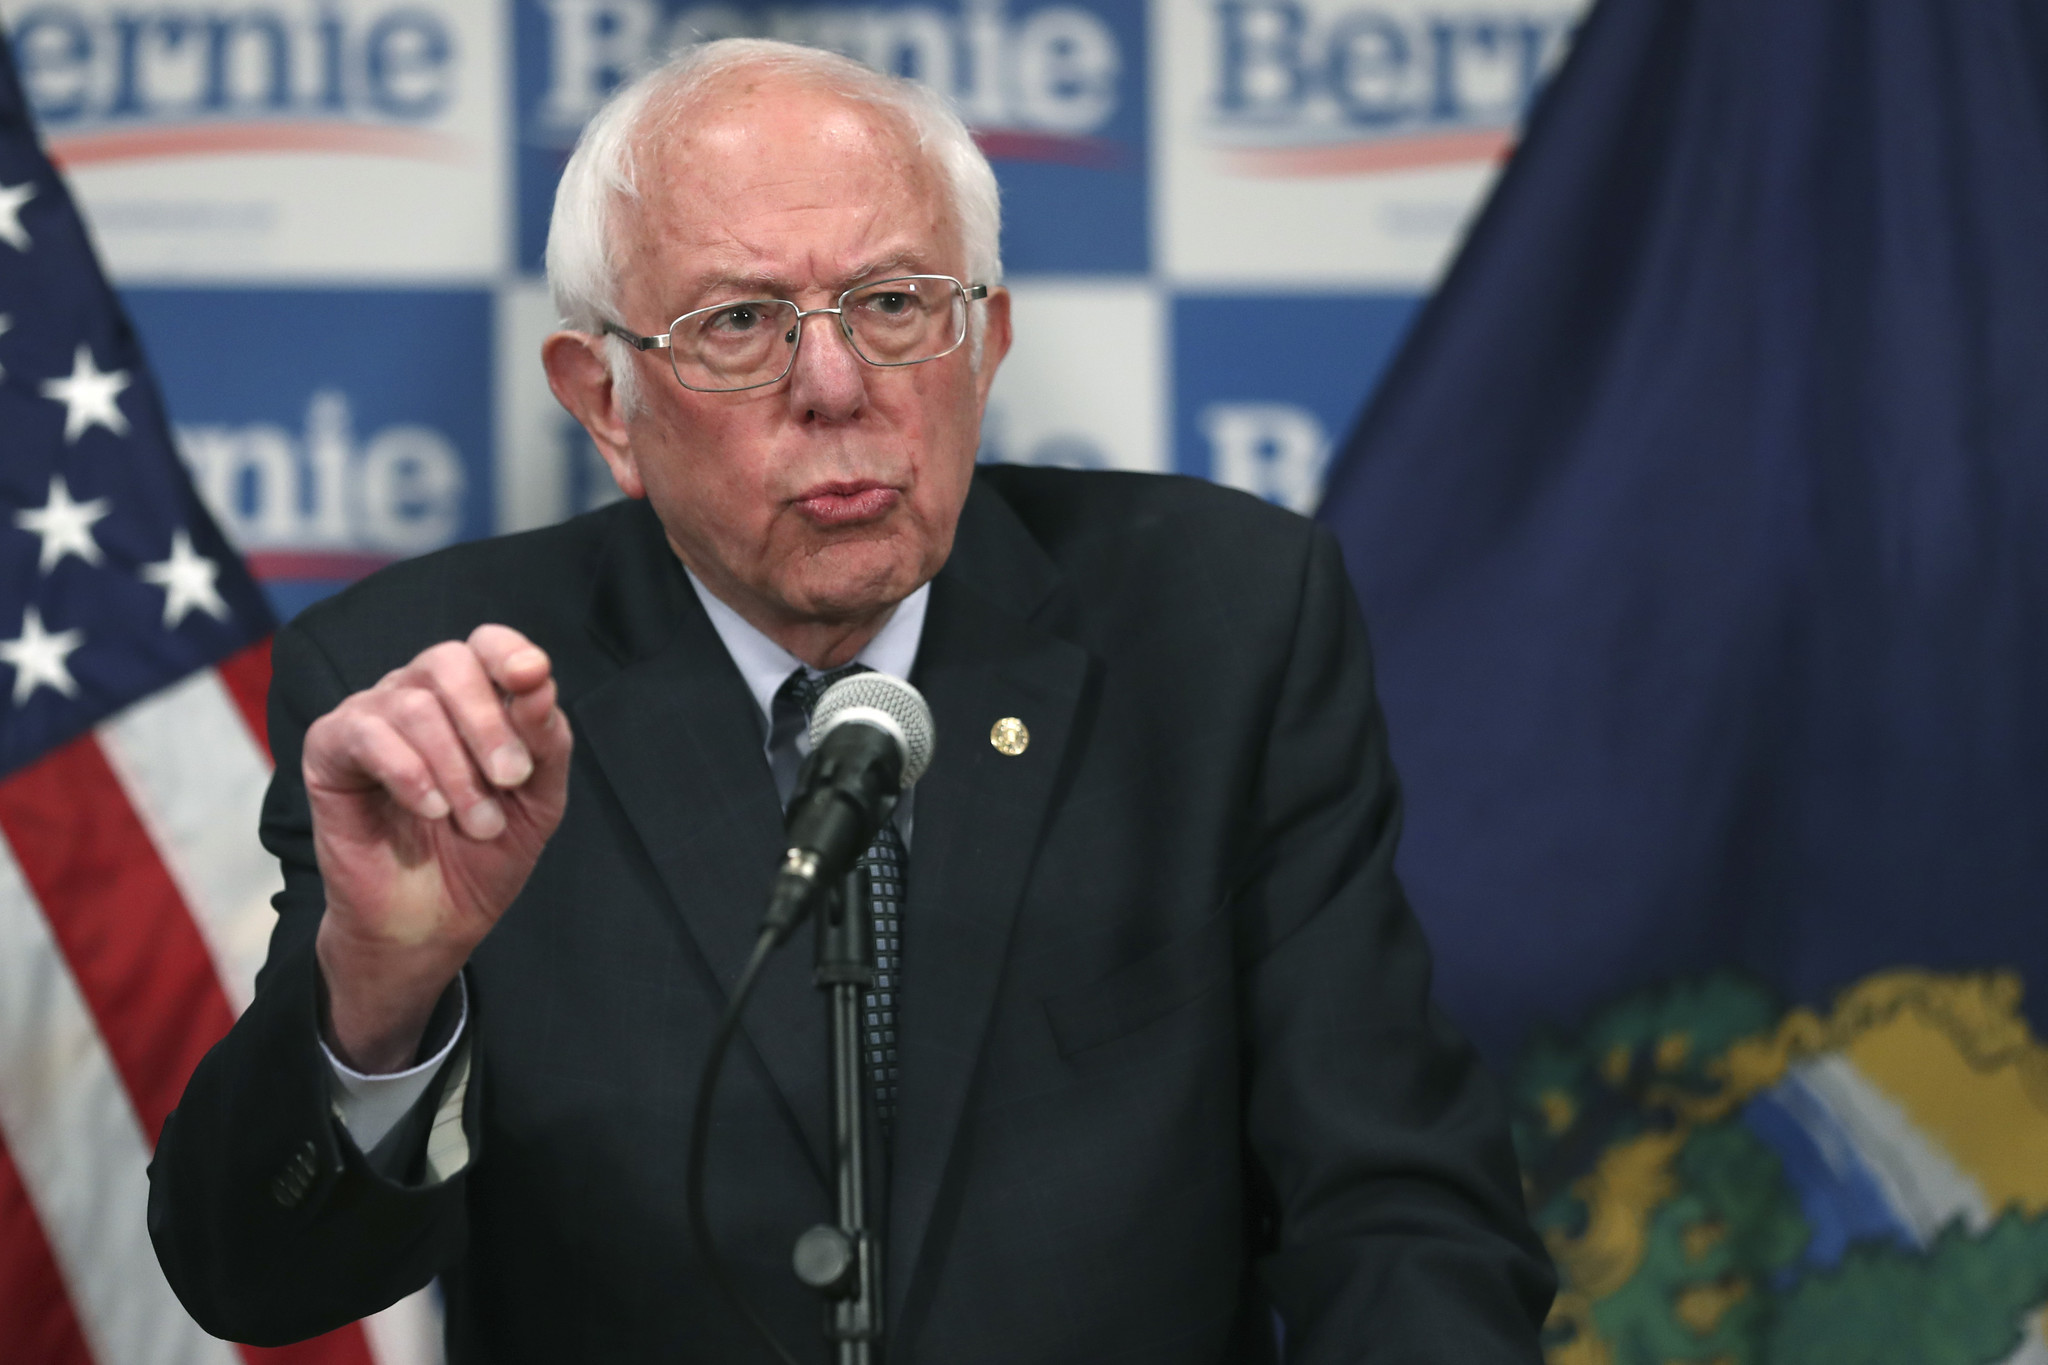 Berning out: With an insurmountable Joe Biden lead, Bernie Sanders must end his quixotic quest